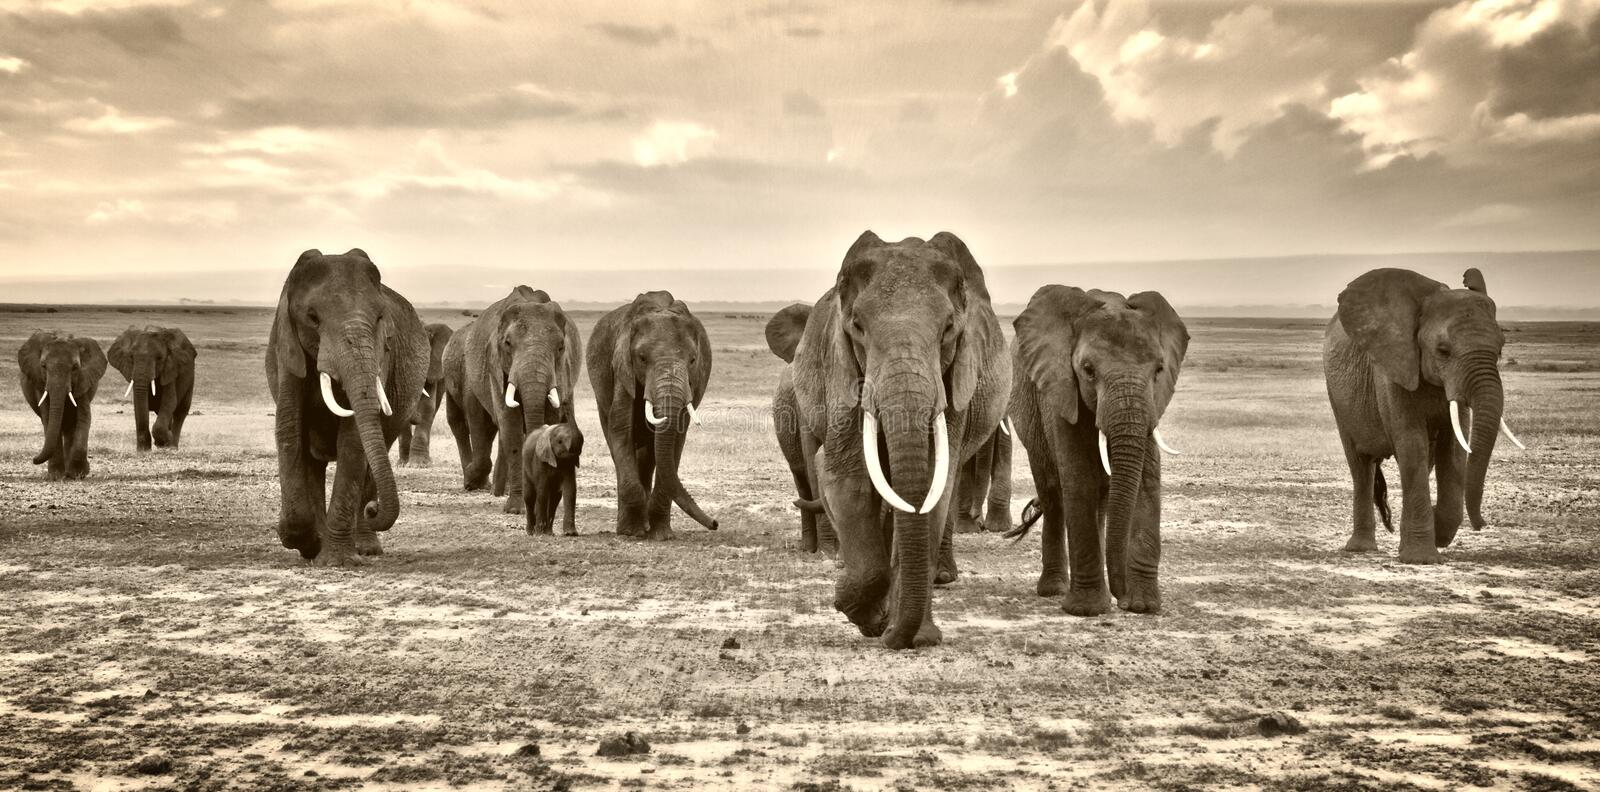 Herd of elephants walking group on the African savannah at photographer royalty free stock photography